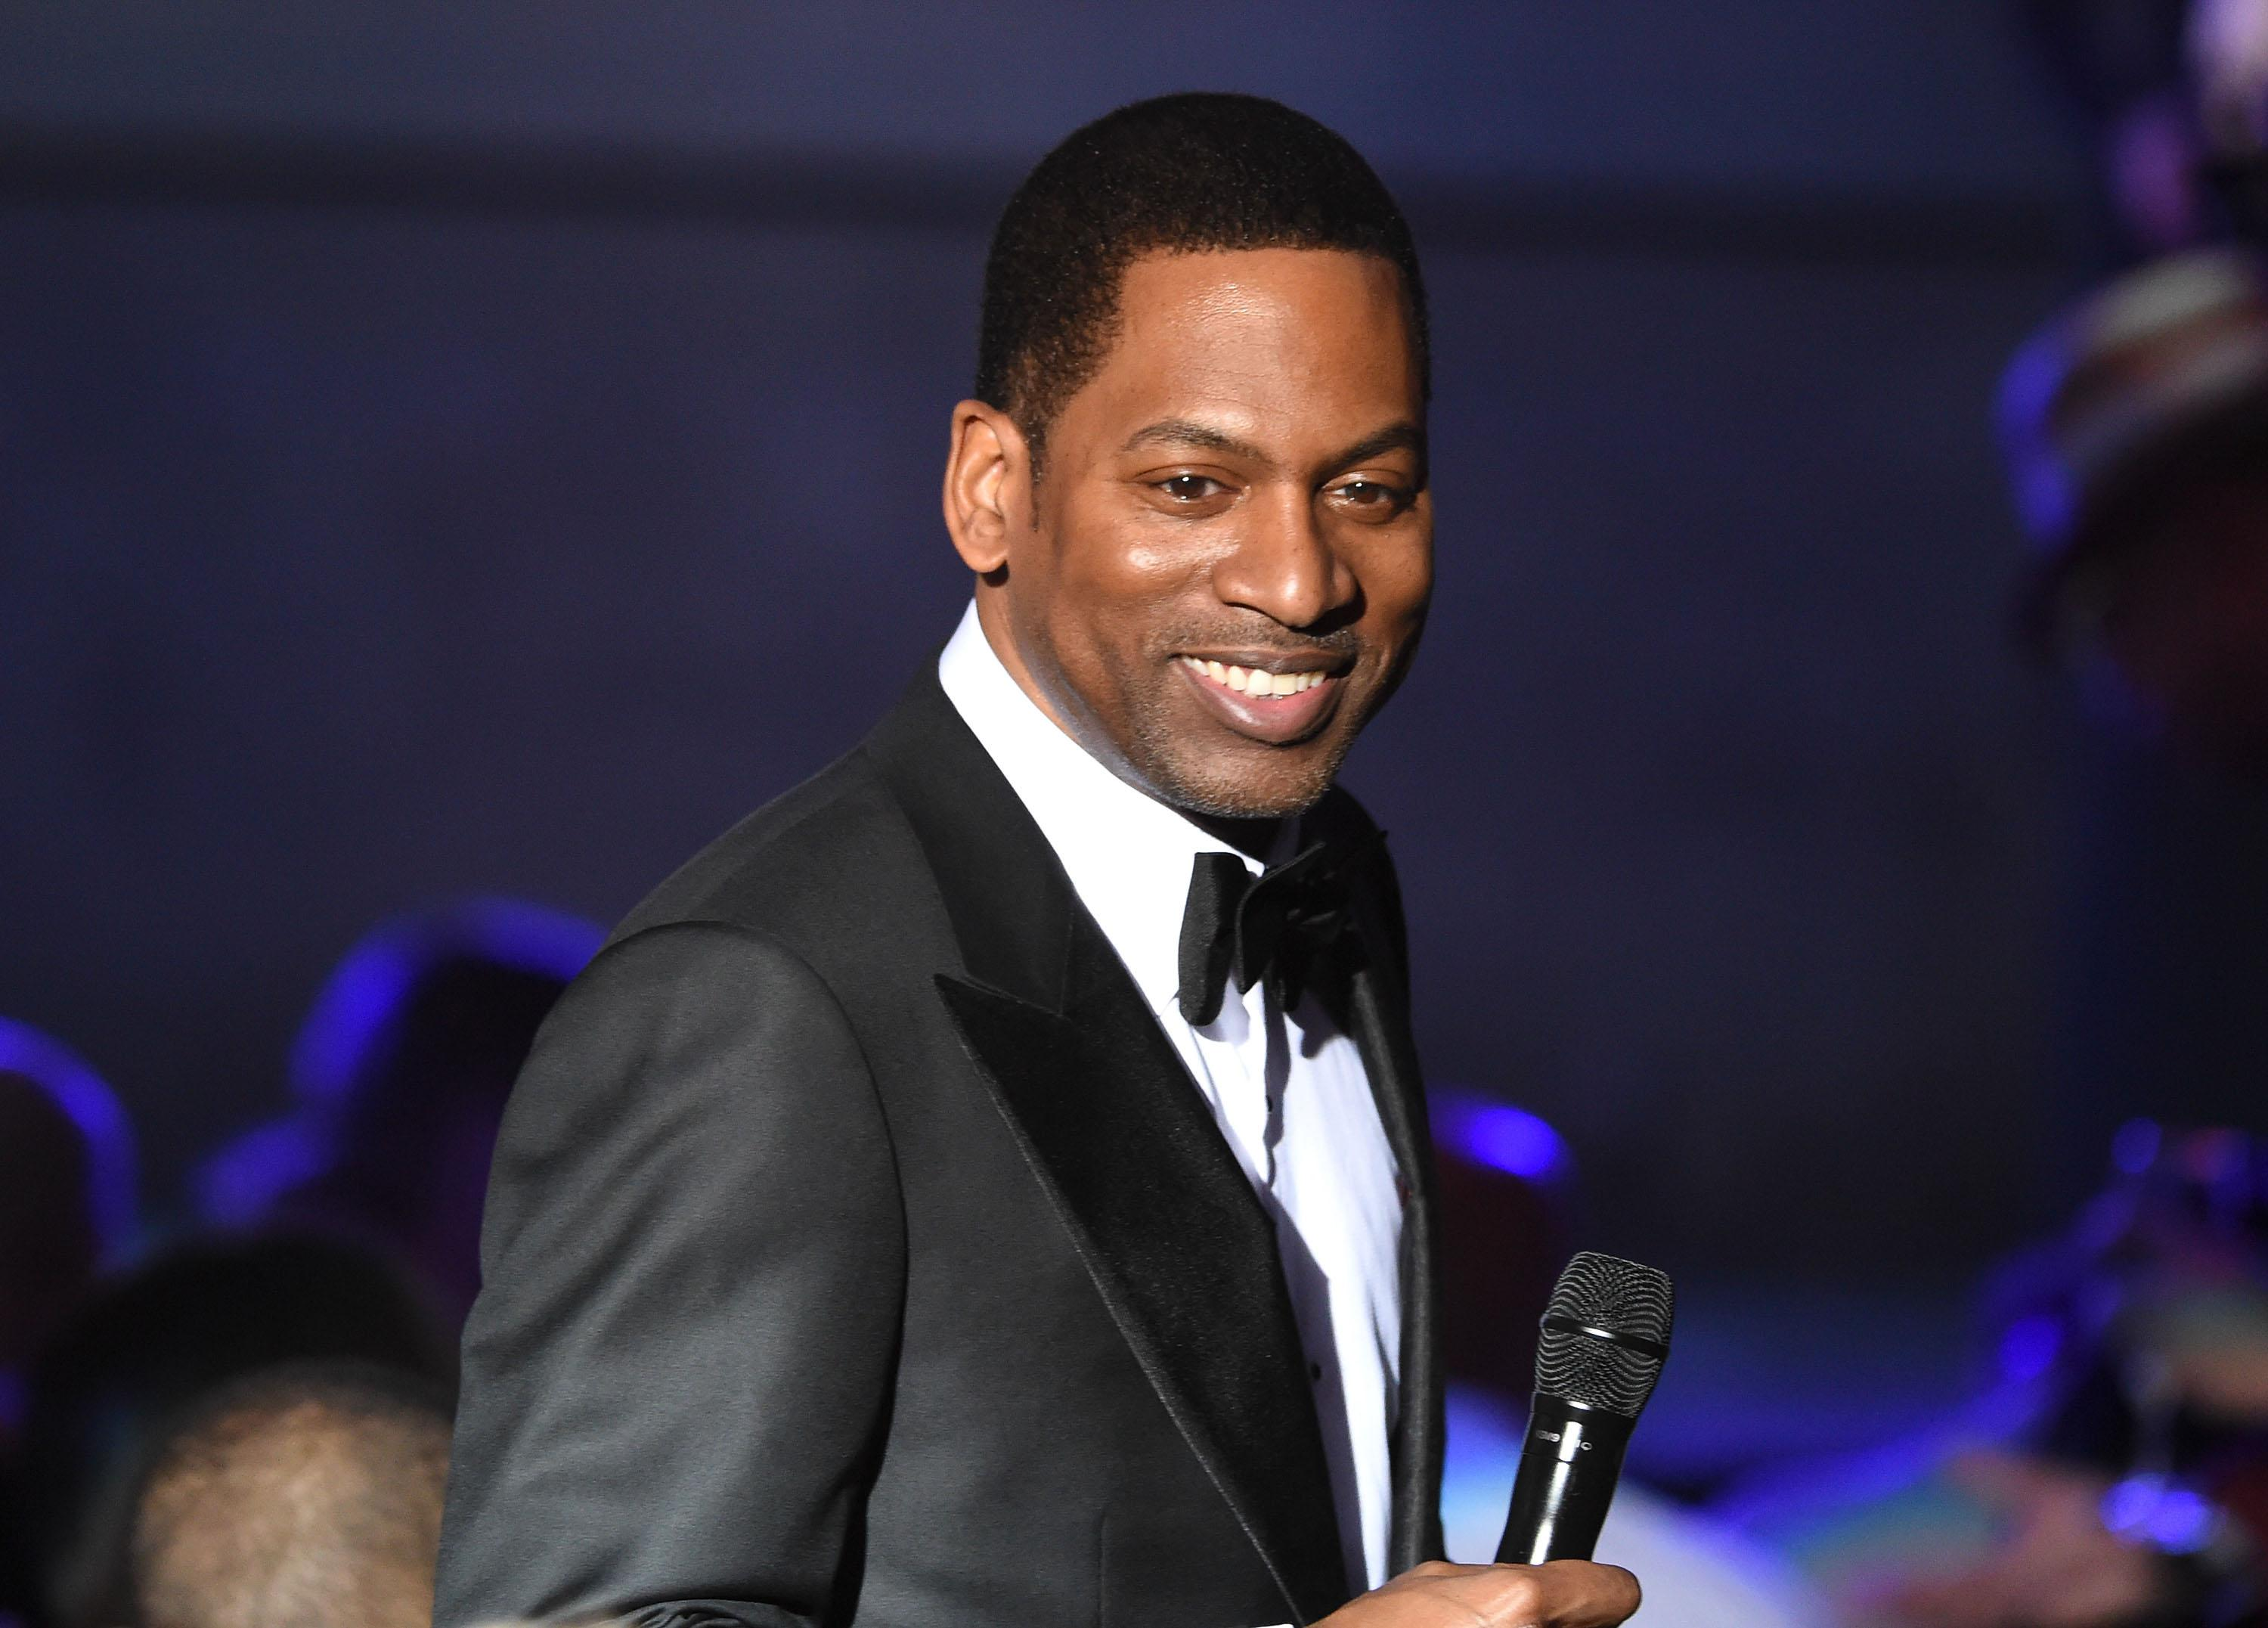 rocks the dating game Comedian tony rock hosts a new concept for combining the art of dating with game show antics, and it debuts on tv one, tuesday january 31 the game of dating involves teams of real friends or family for a genre-bending effort that is good for laughs the network describes it as a.